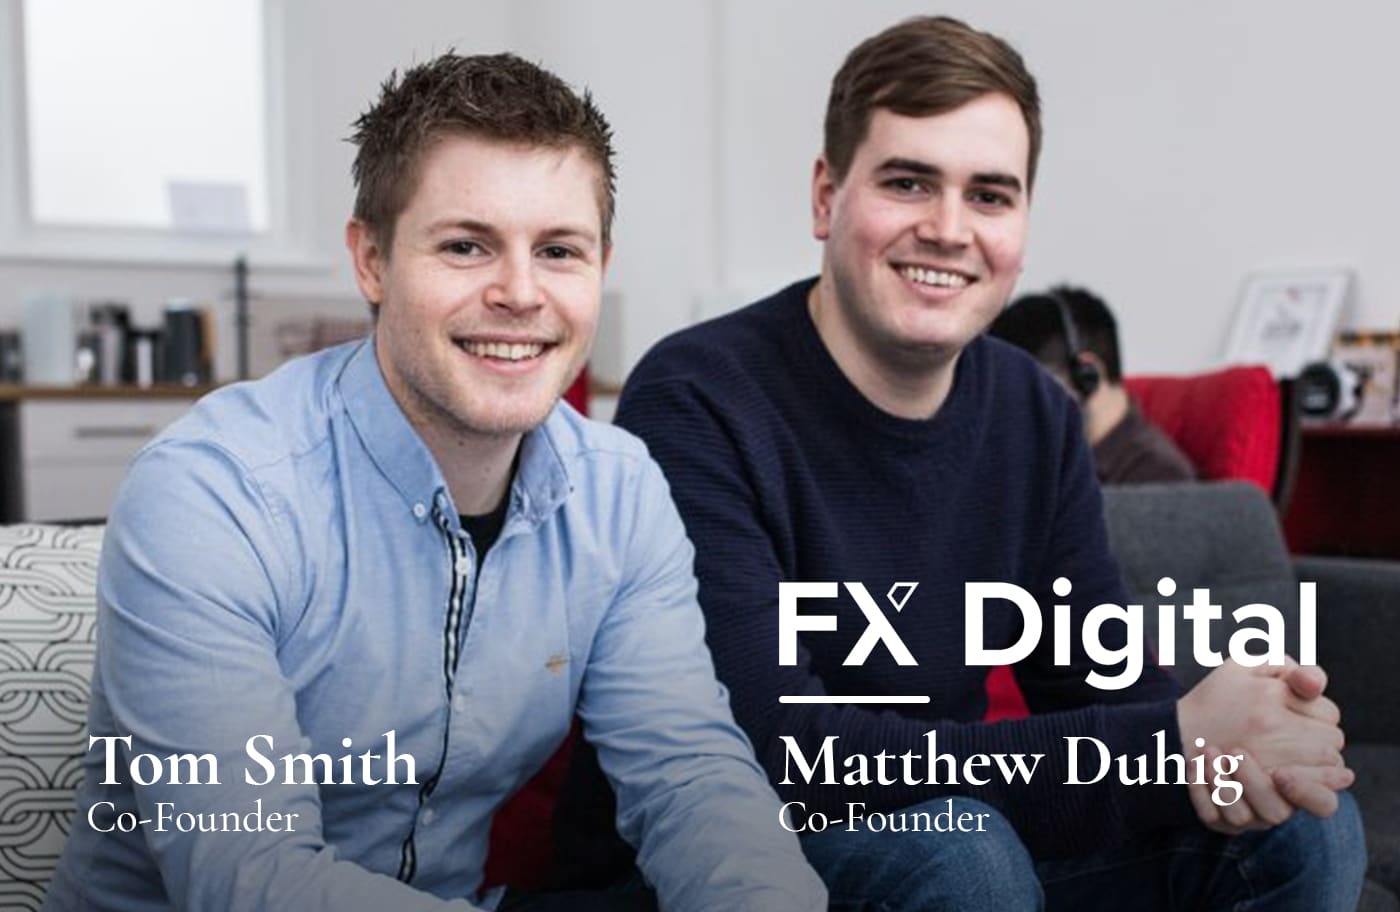 Matthew Duhig and Tom Smith founders of FX Digital in London